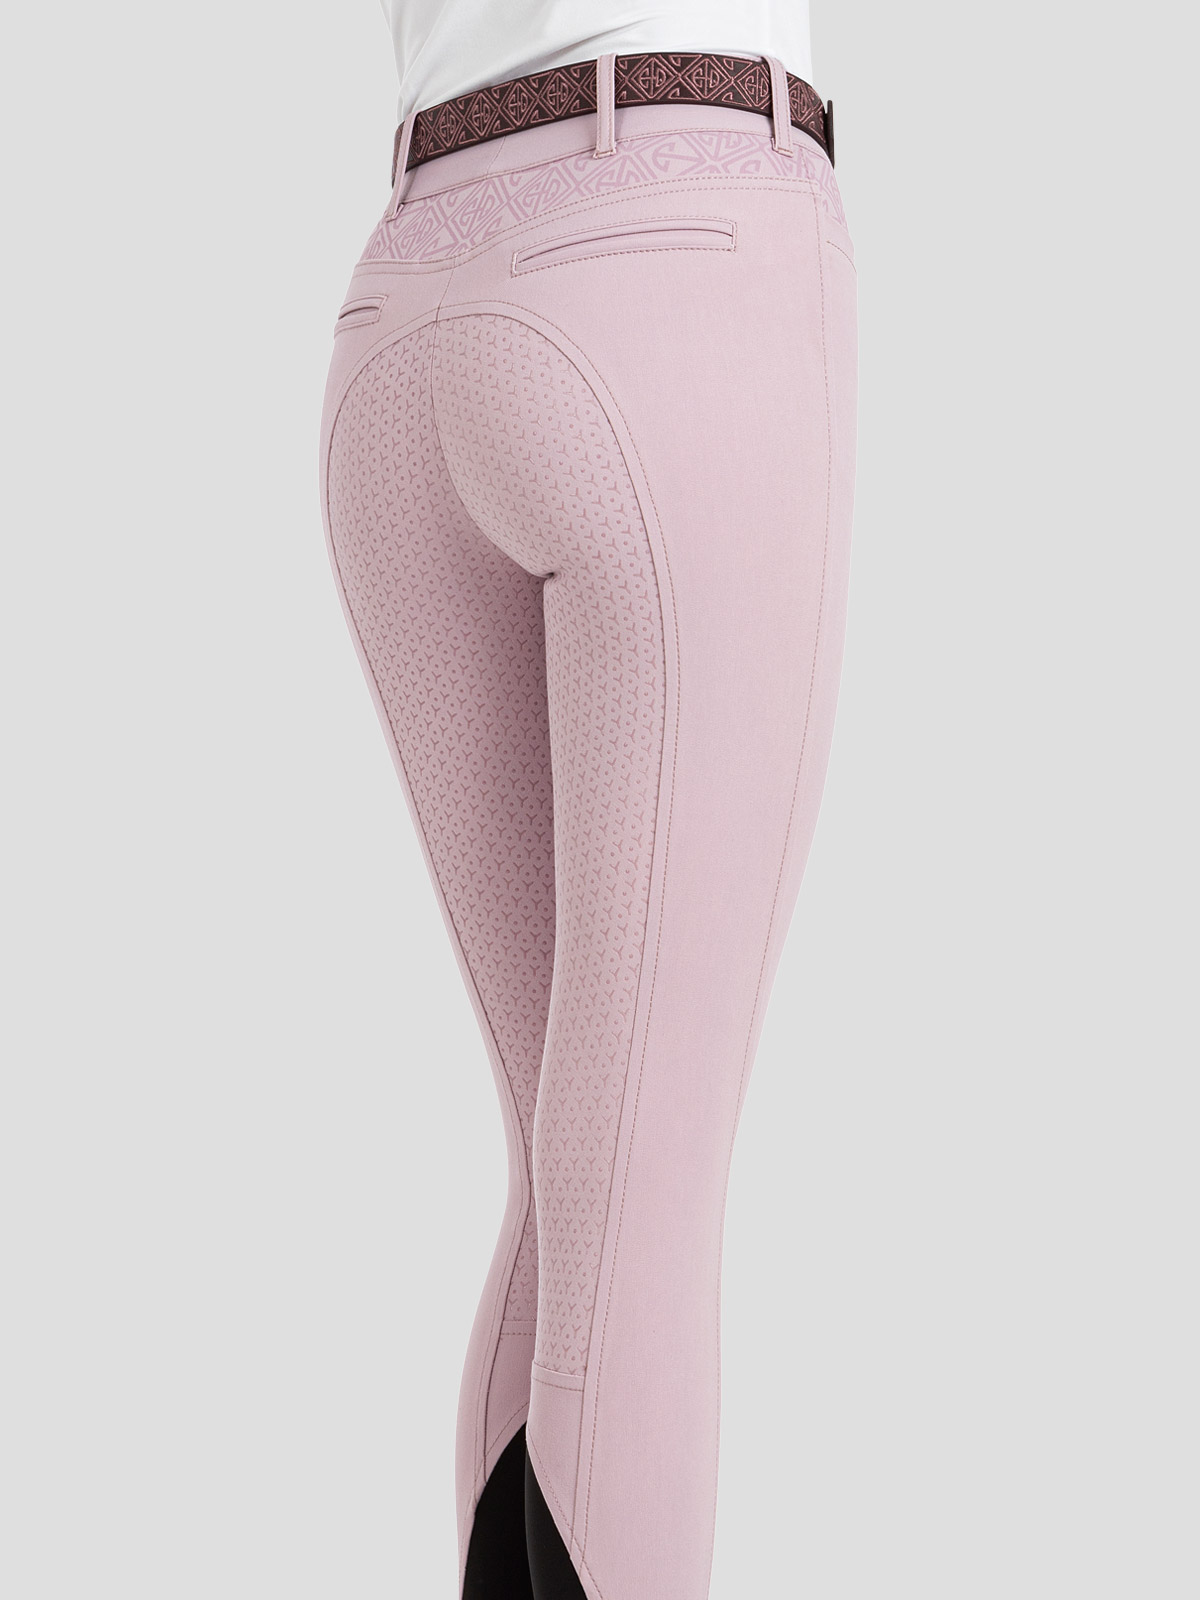 ESASHI WOMEN'S FULL SEAT GRIP BREECHES WITH LOGO PATTERN 3